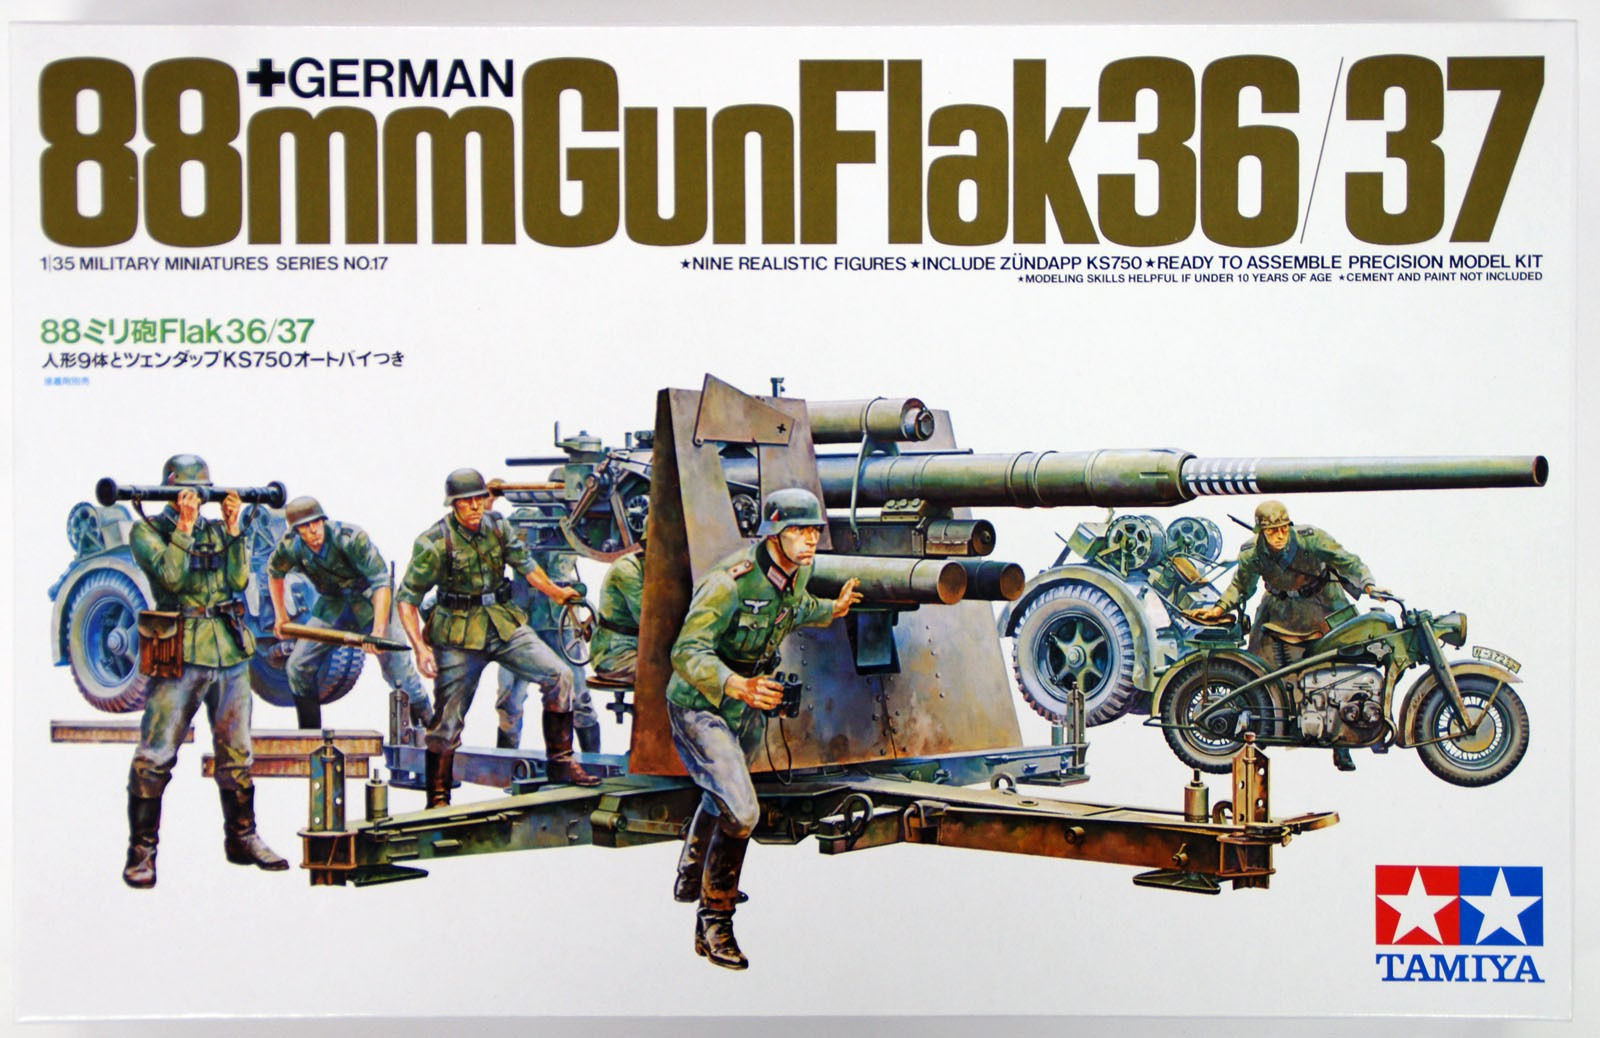 German 88mm Gun Flak 36.37 Kit - Tamiya 35017 - plastic model kit - 1/35 scale